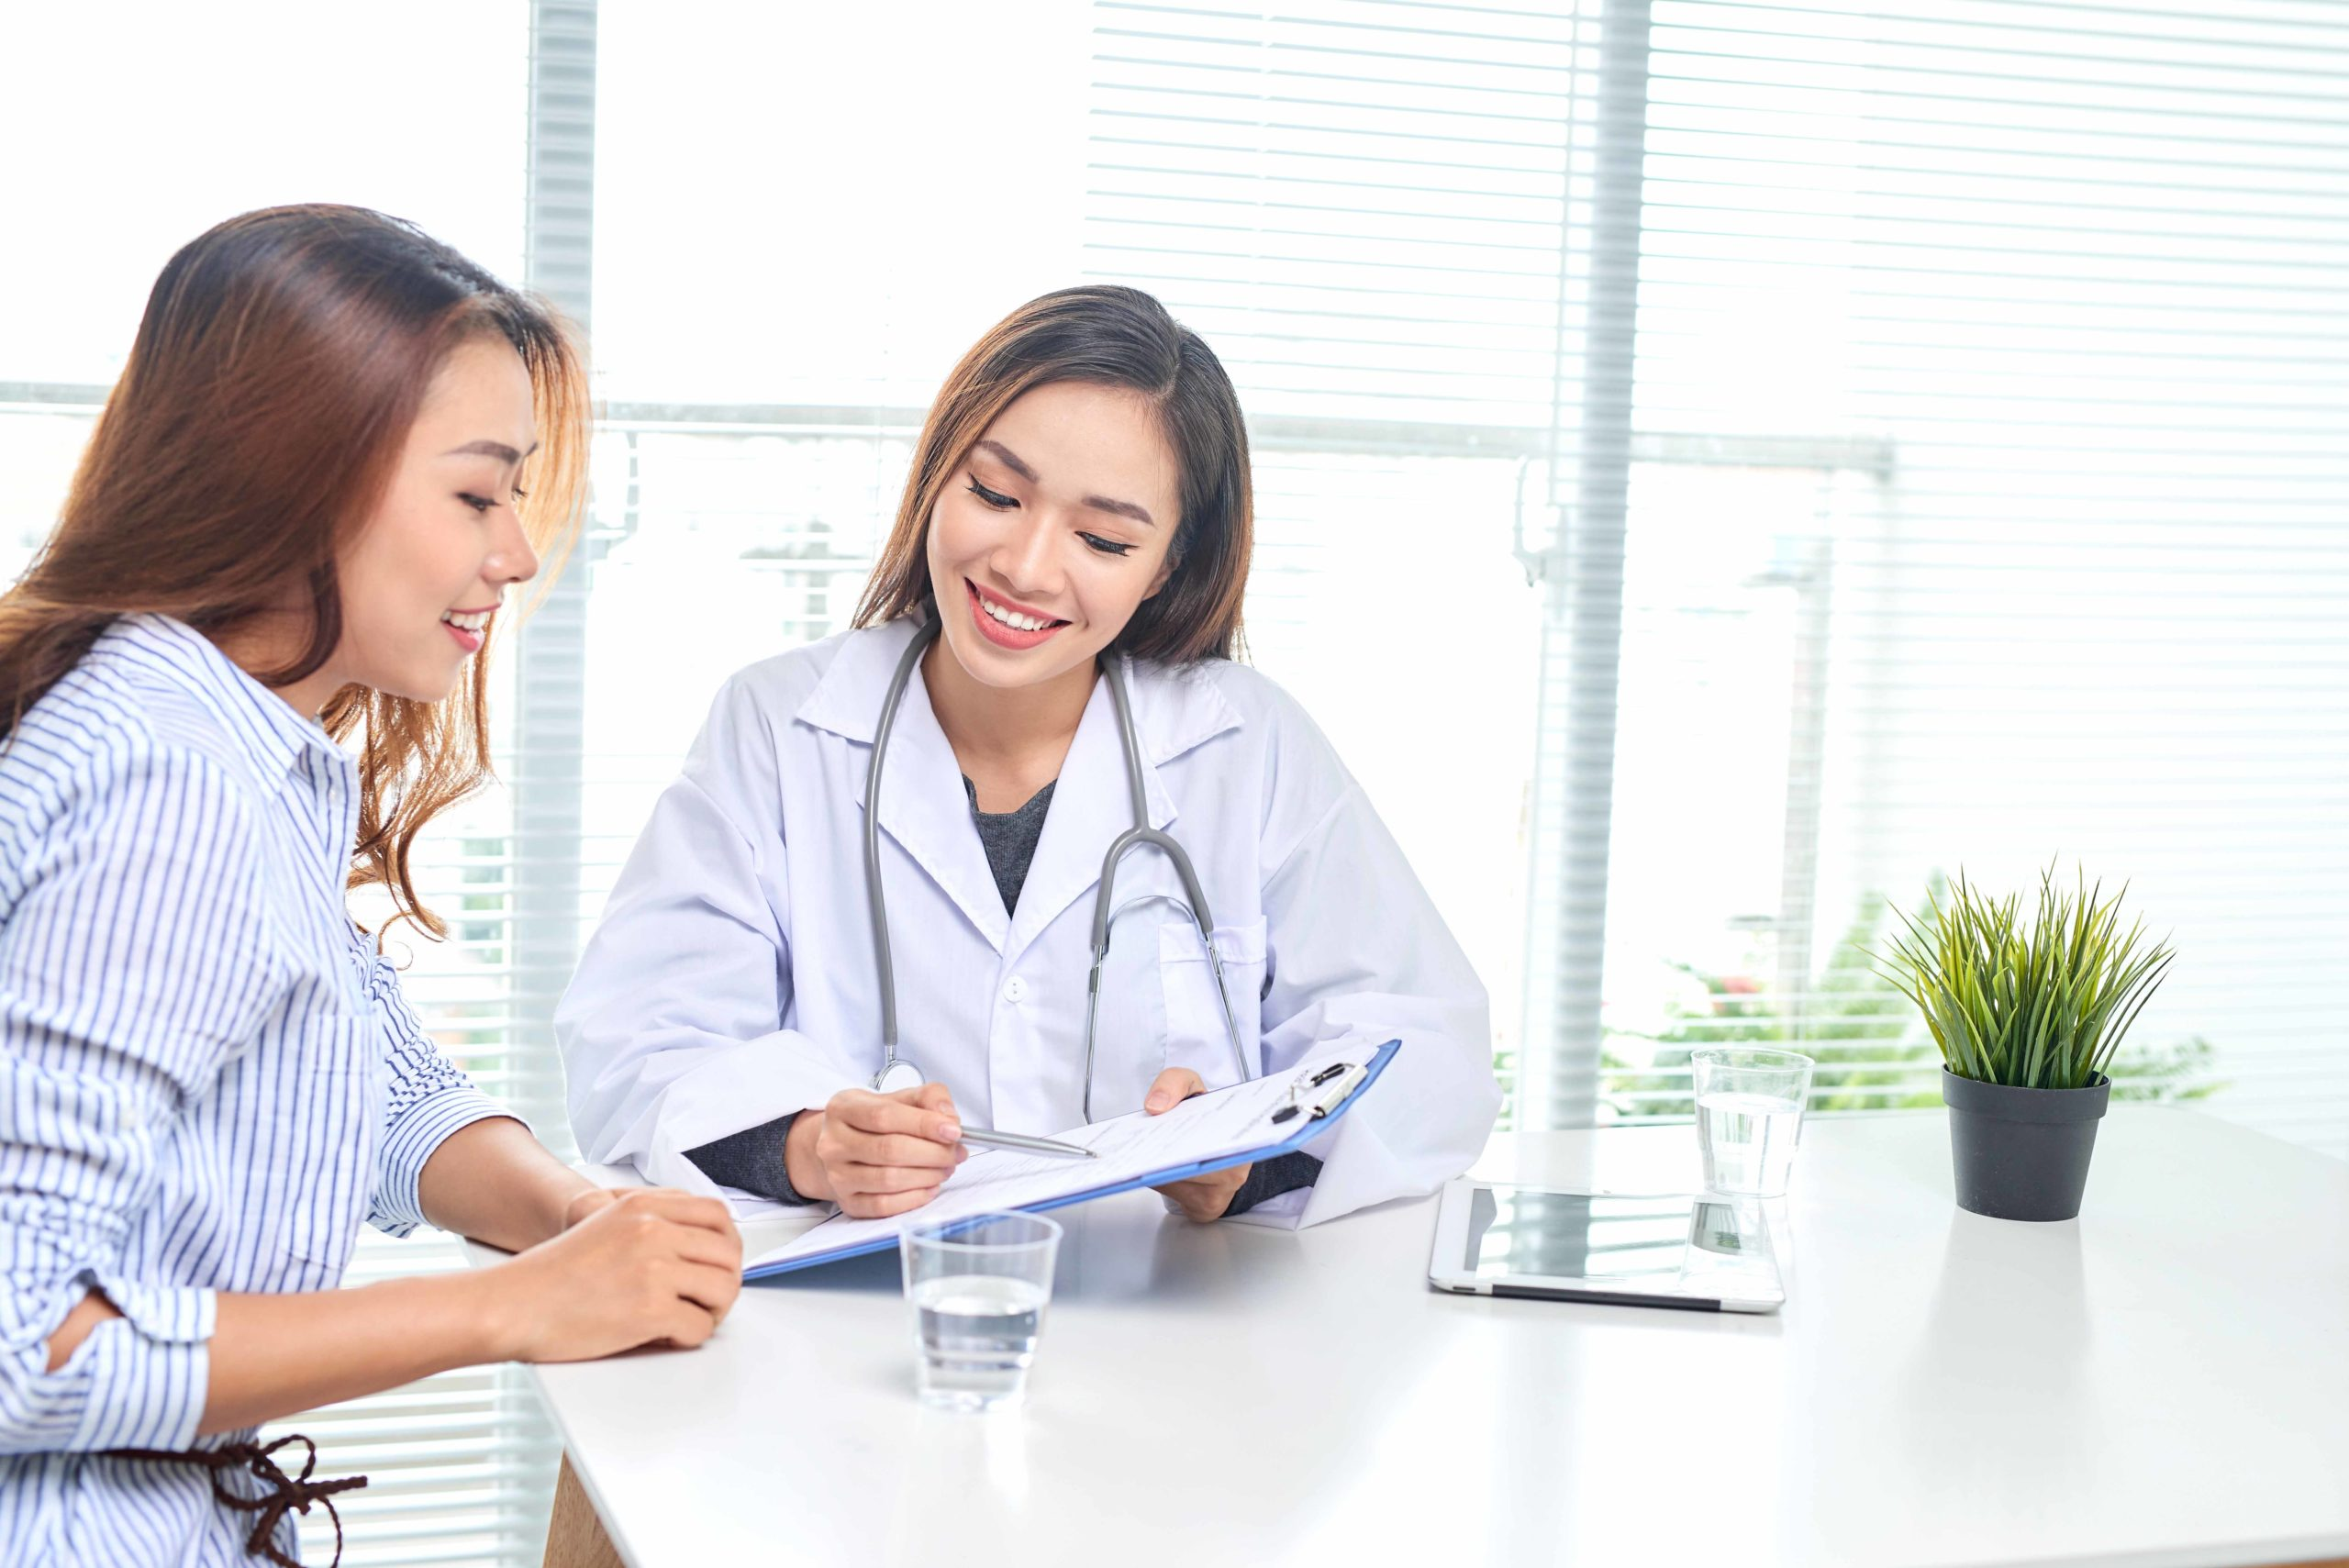 Female doctor talks to female patient in hospital office while writing on the patients health record on the table. Healthcare and medical service.